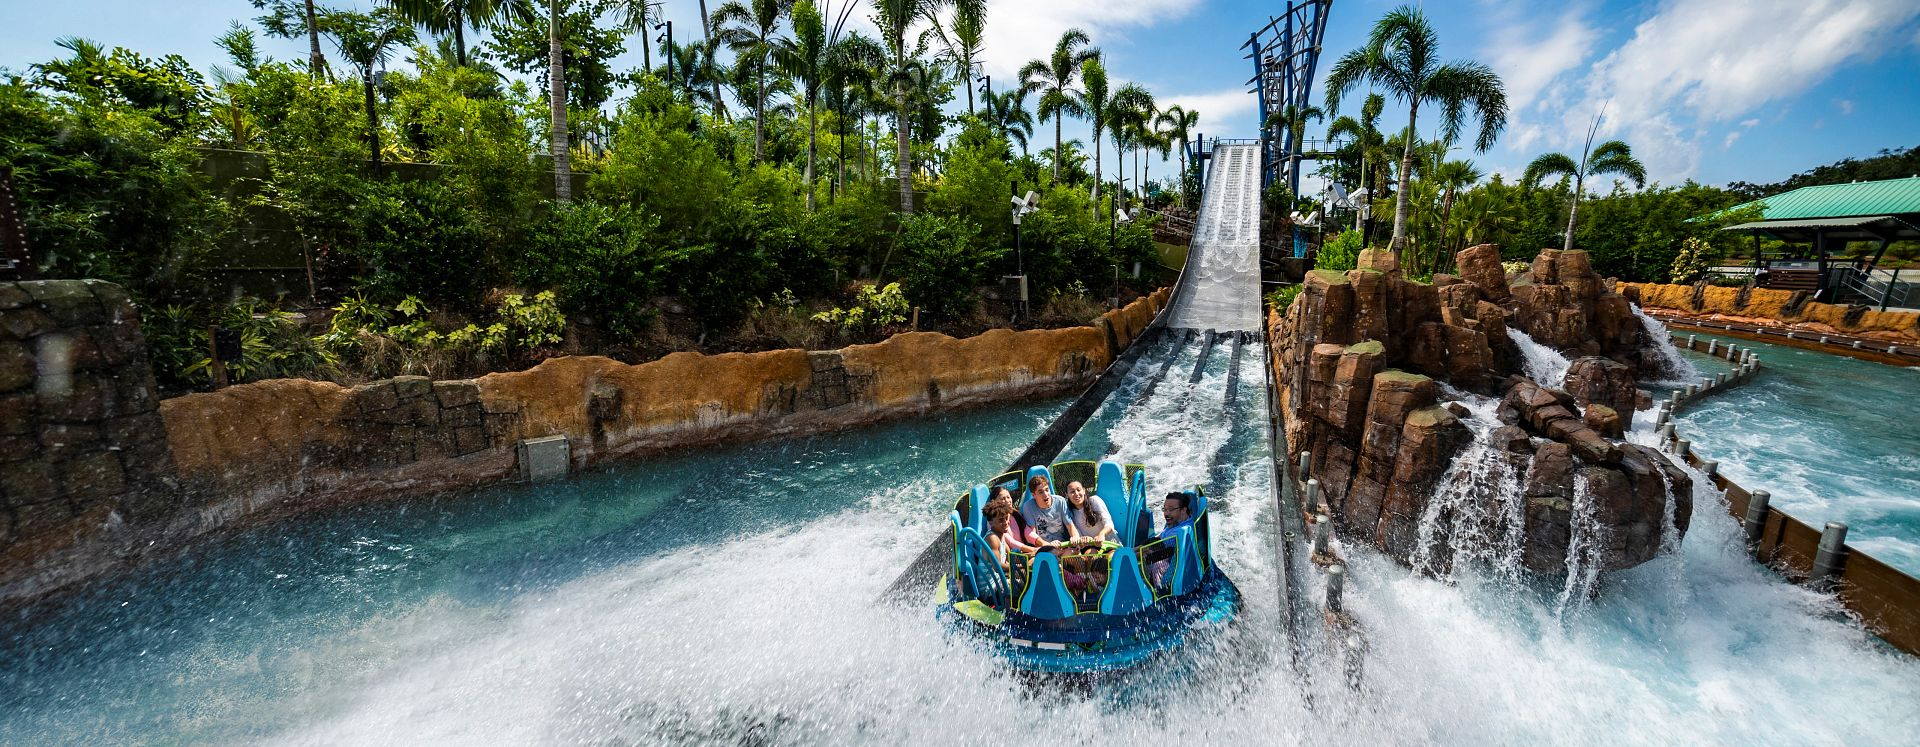 Family Riding Infinity Falls at Seaworld Orlando